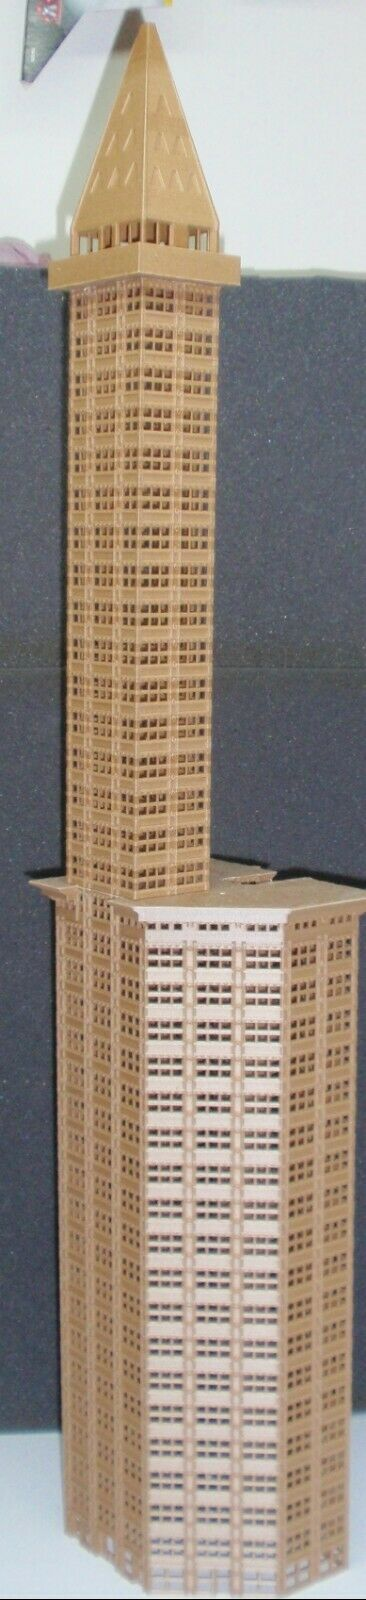 MASSIVE N SCALE SKYSCRAPER BASED OFF THE SMITH TOWER